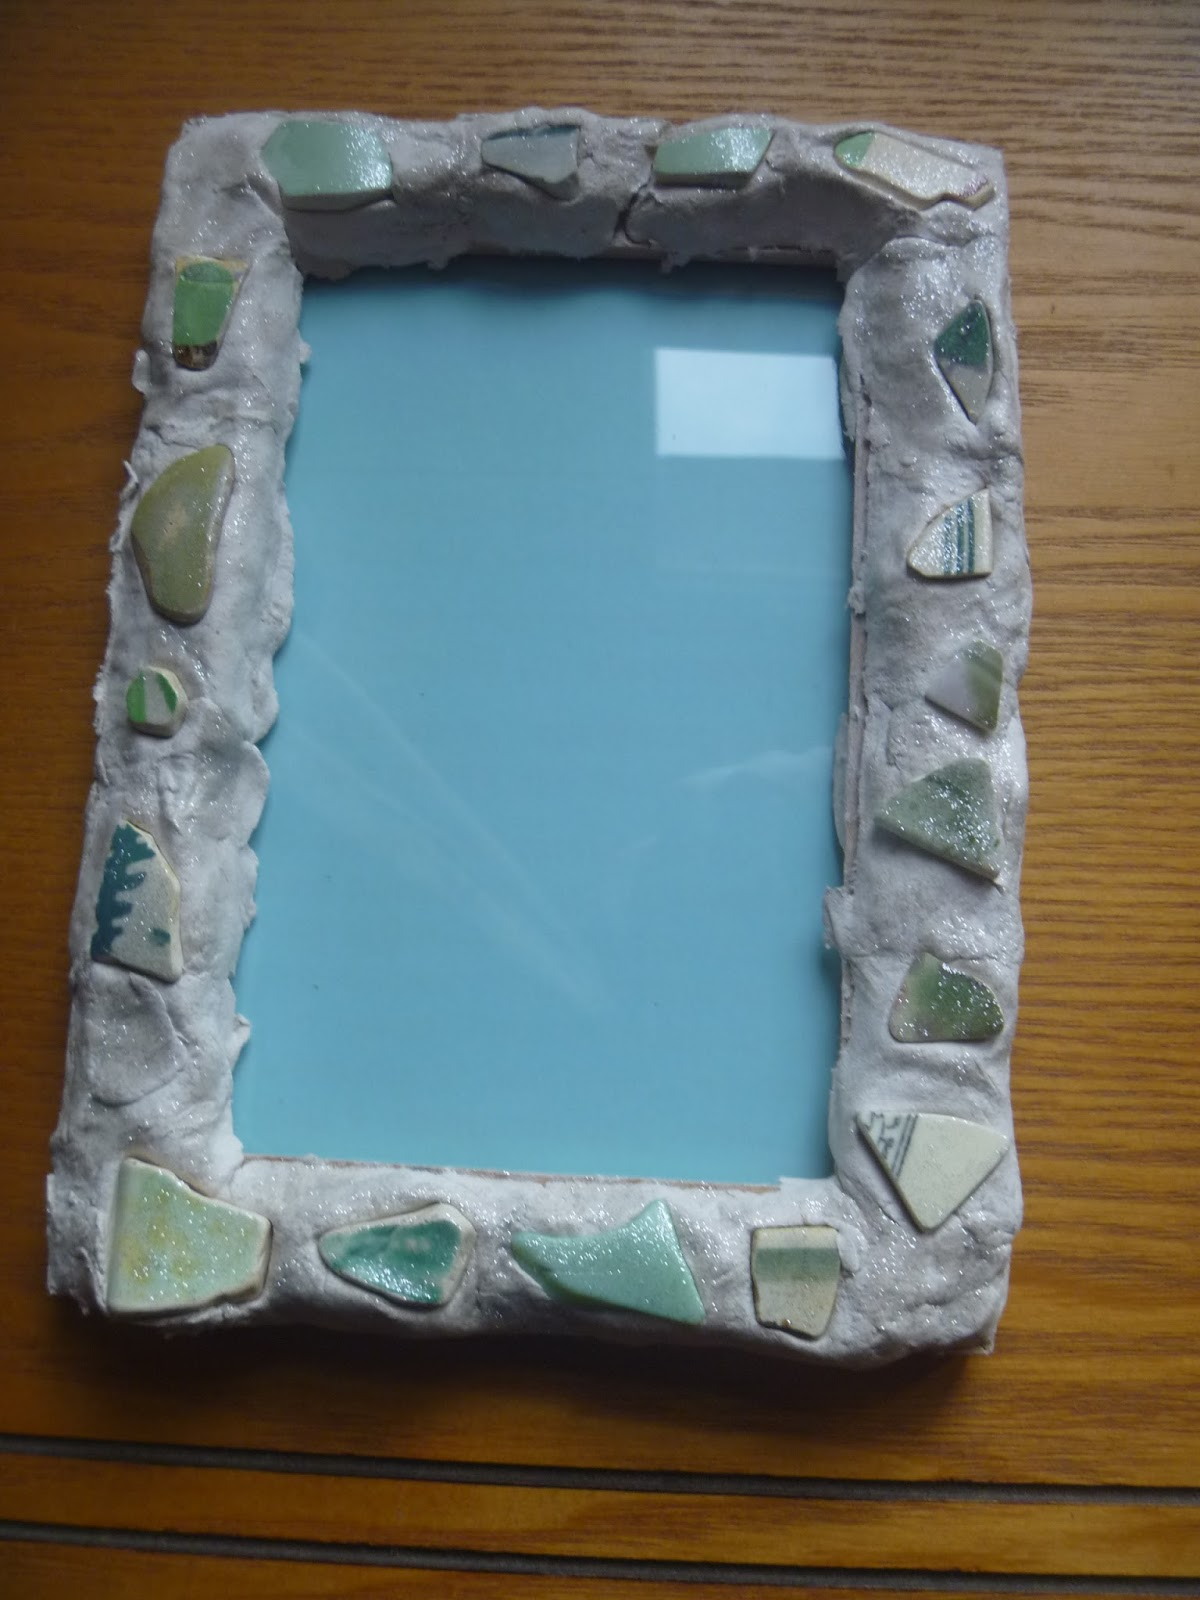 crafty green poet a crafty experiment decorated photo frame